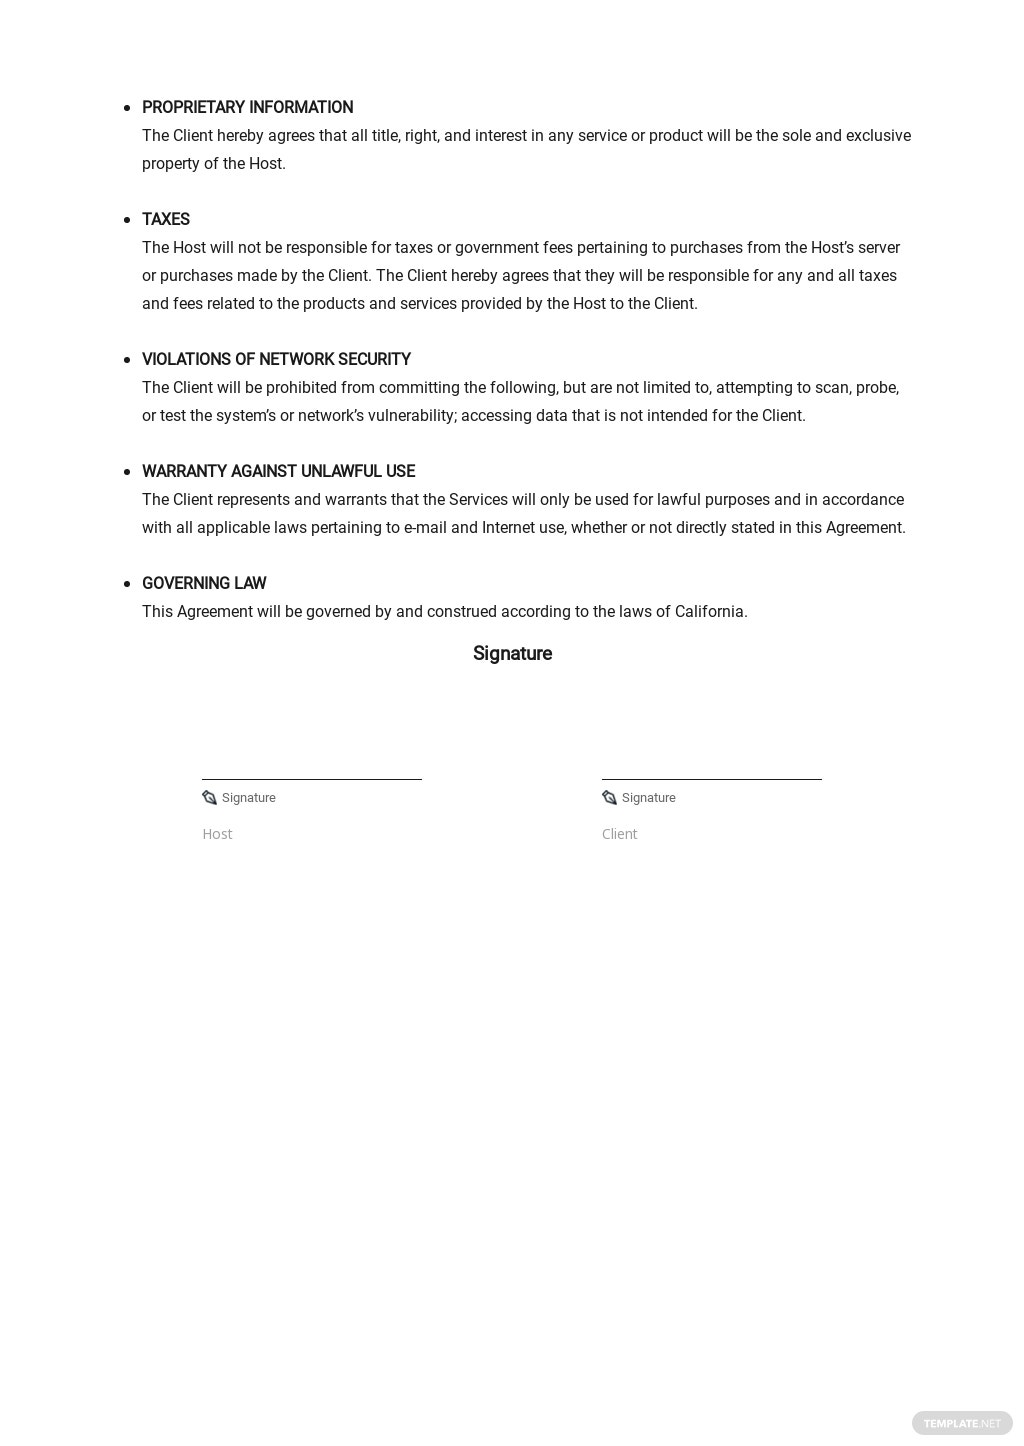 User Agreement for Web Hosting Service Template 2.jpe